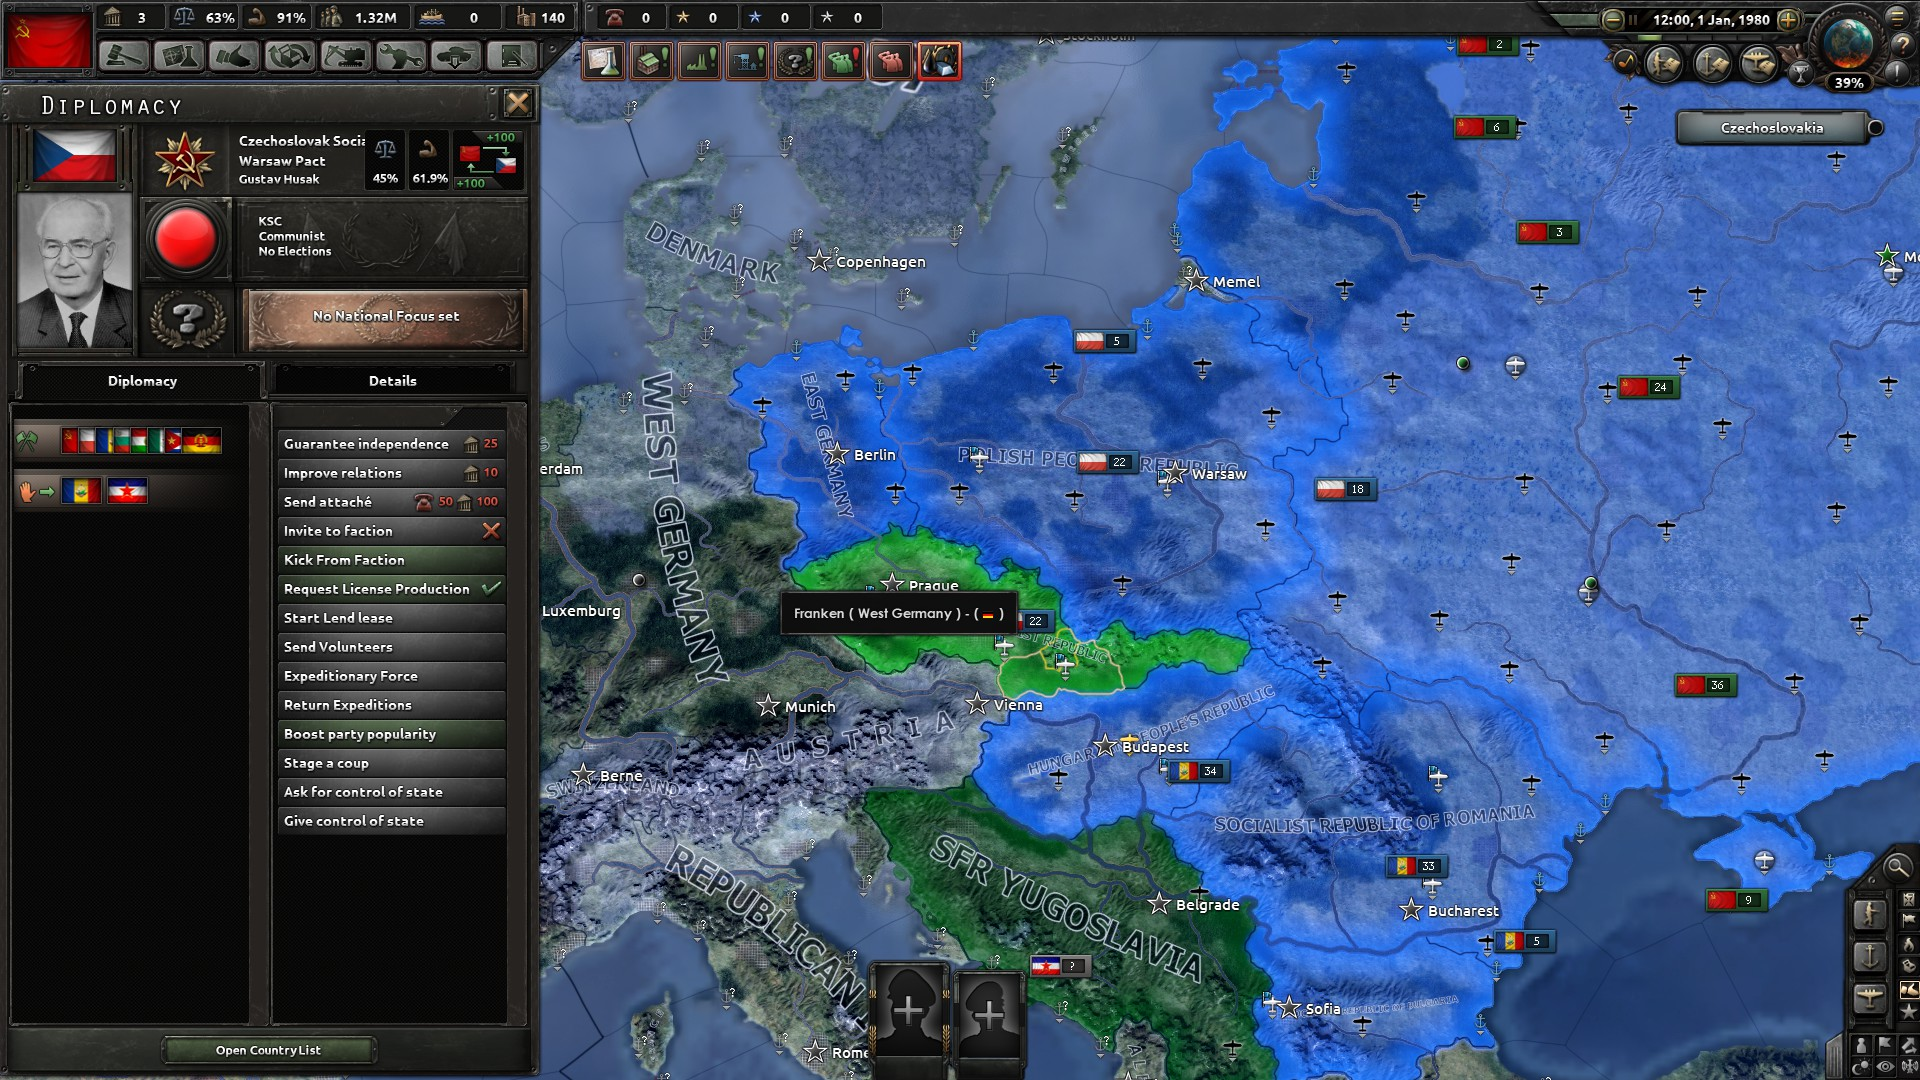 Image 5 - Red Dawn Modification for Hearts of Iron IV - Mod DB